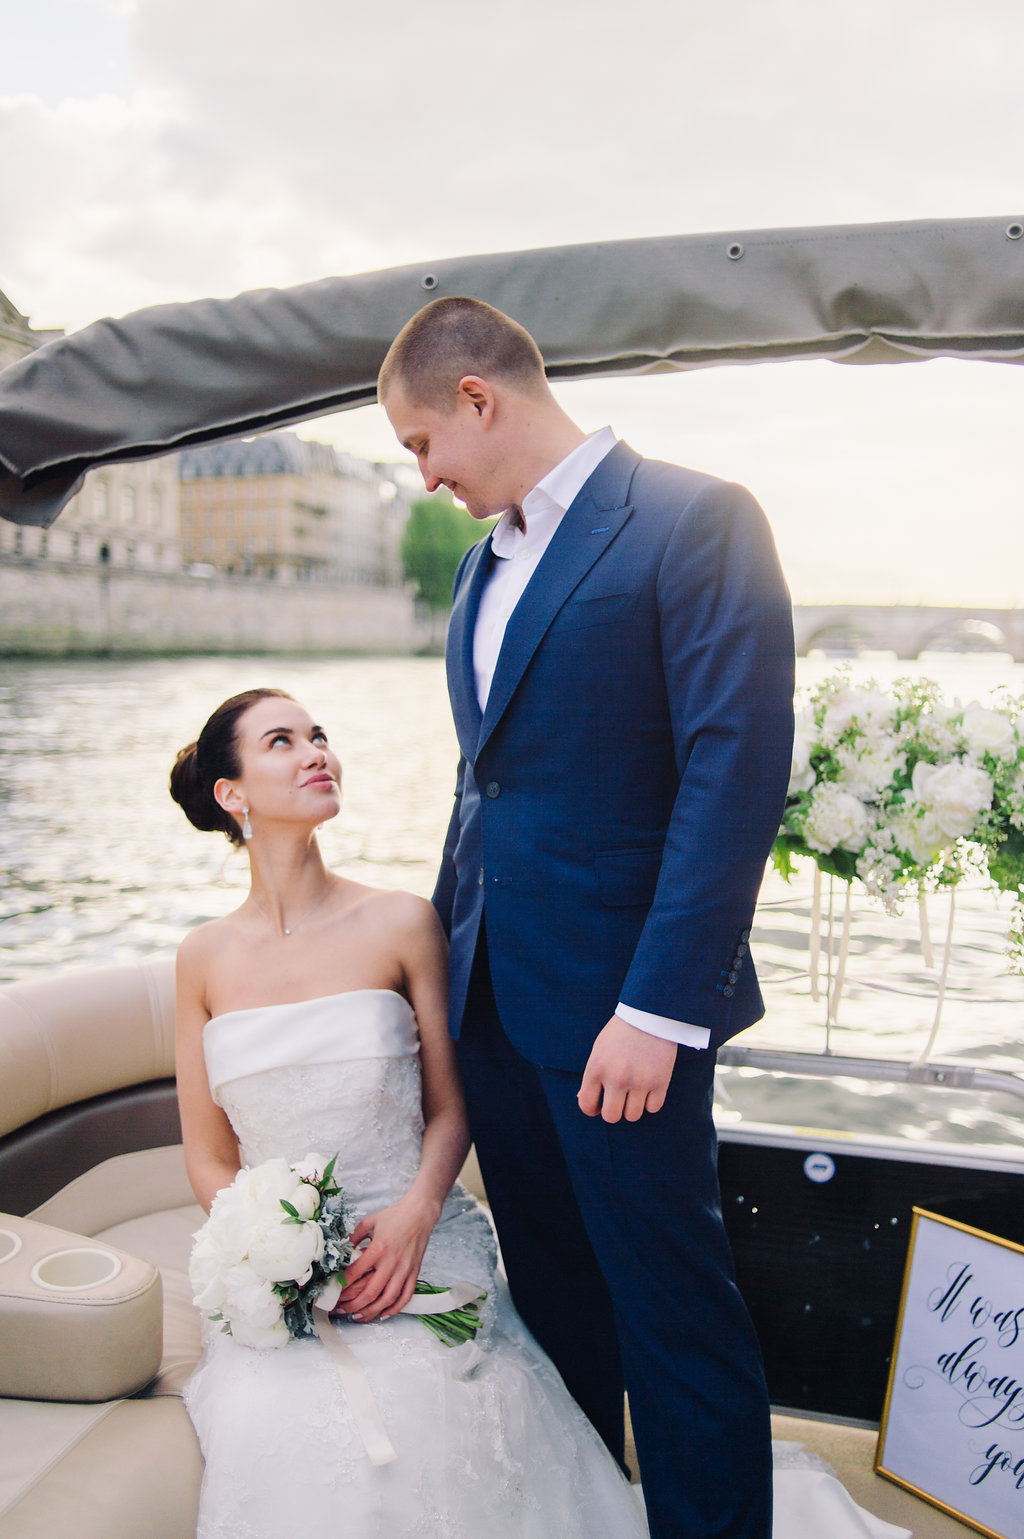 wedding cocktail on a private boat in Paris